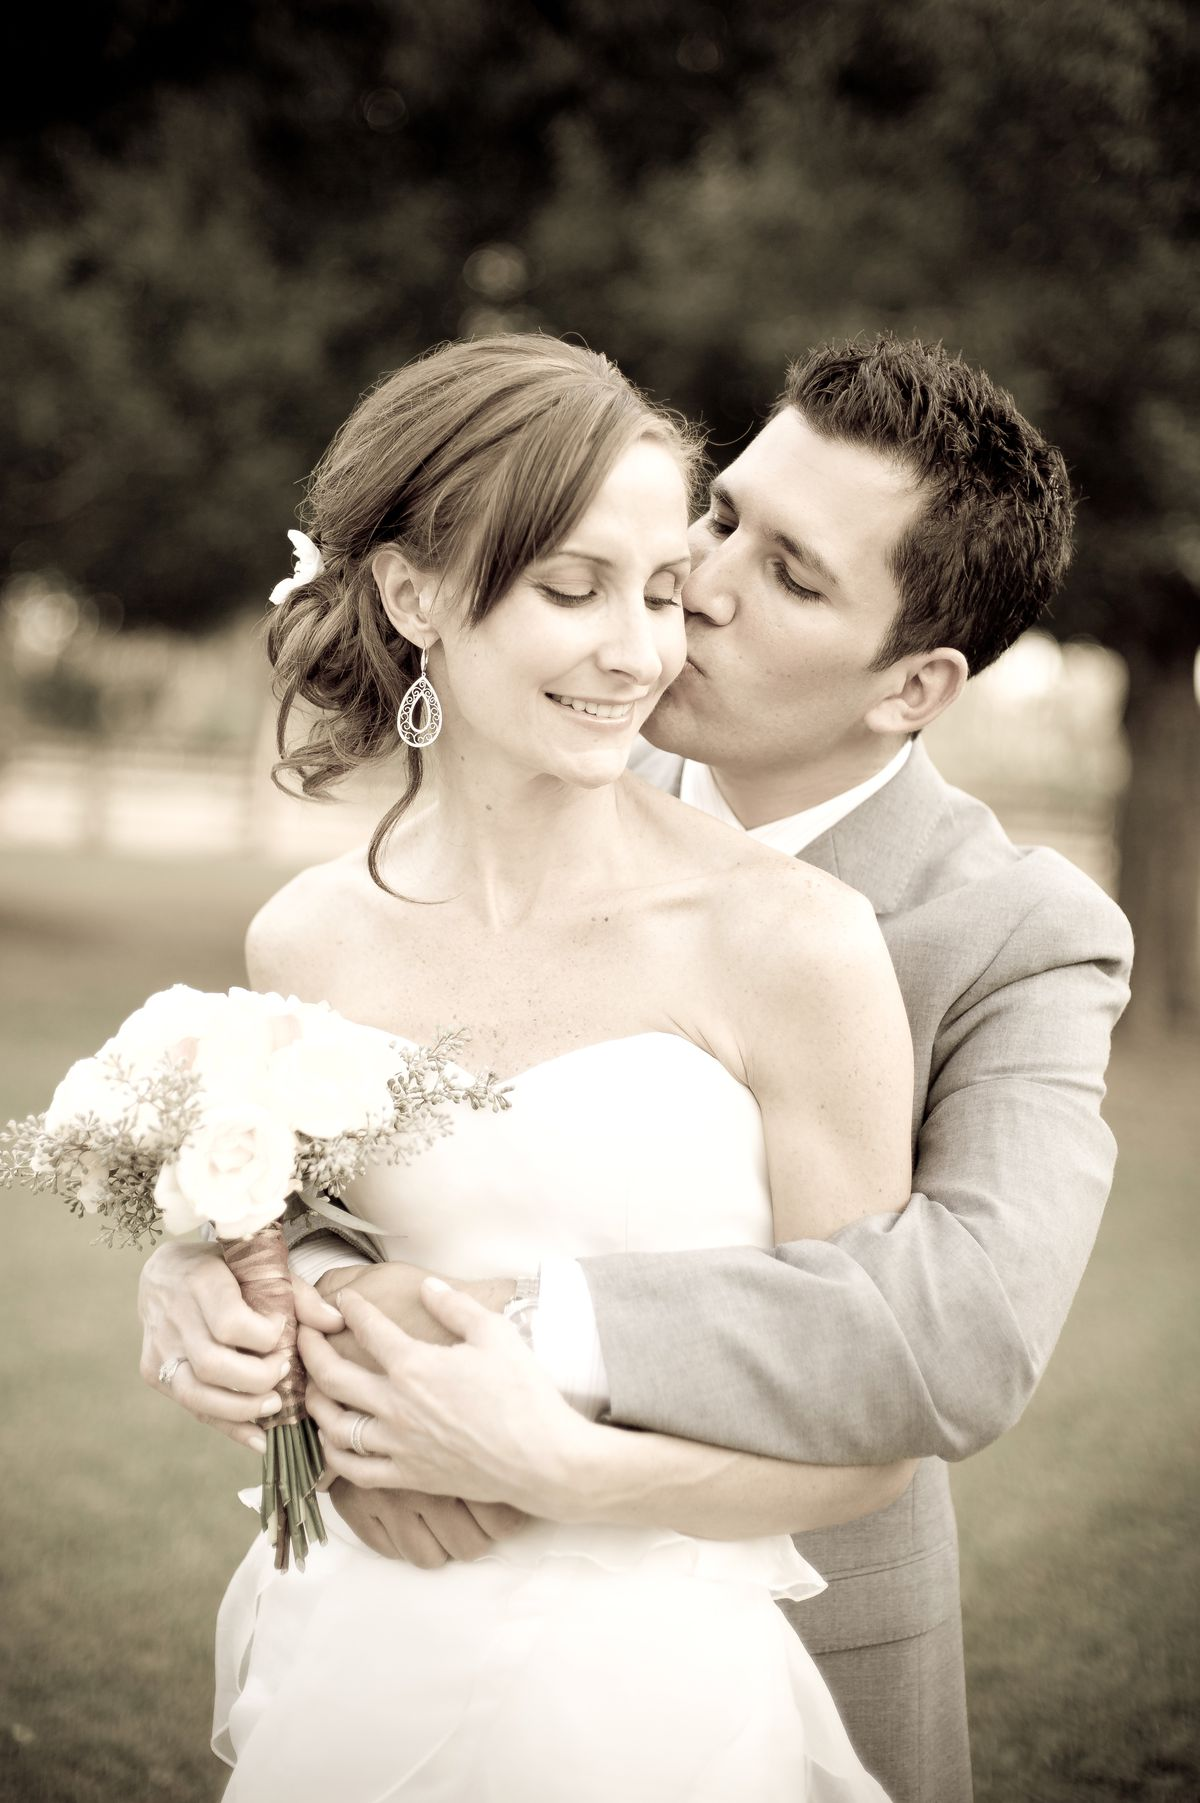 Amy and Pat Tomasulo on their wedding day. | Provided Photo